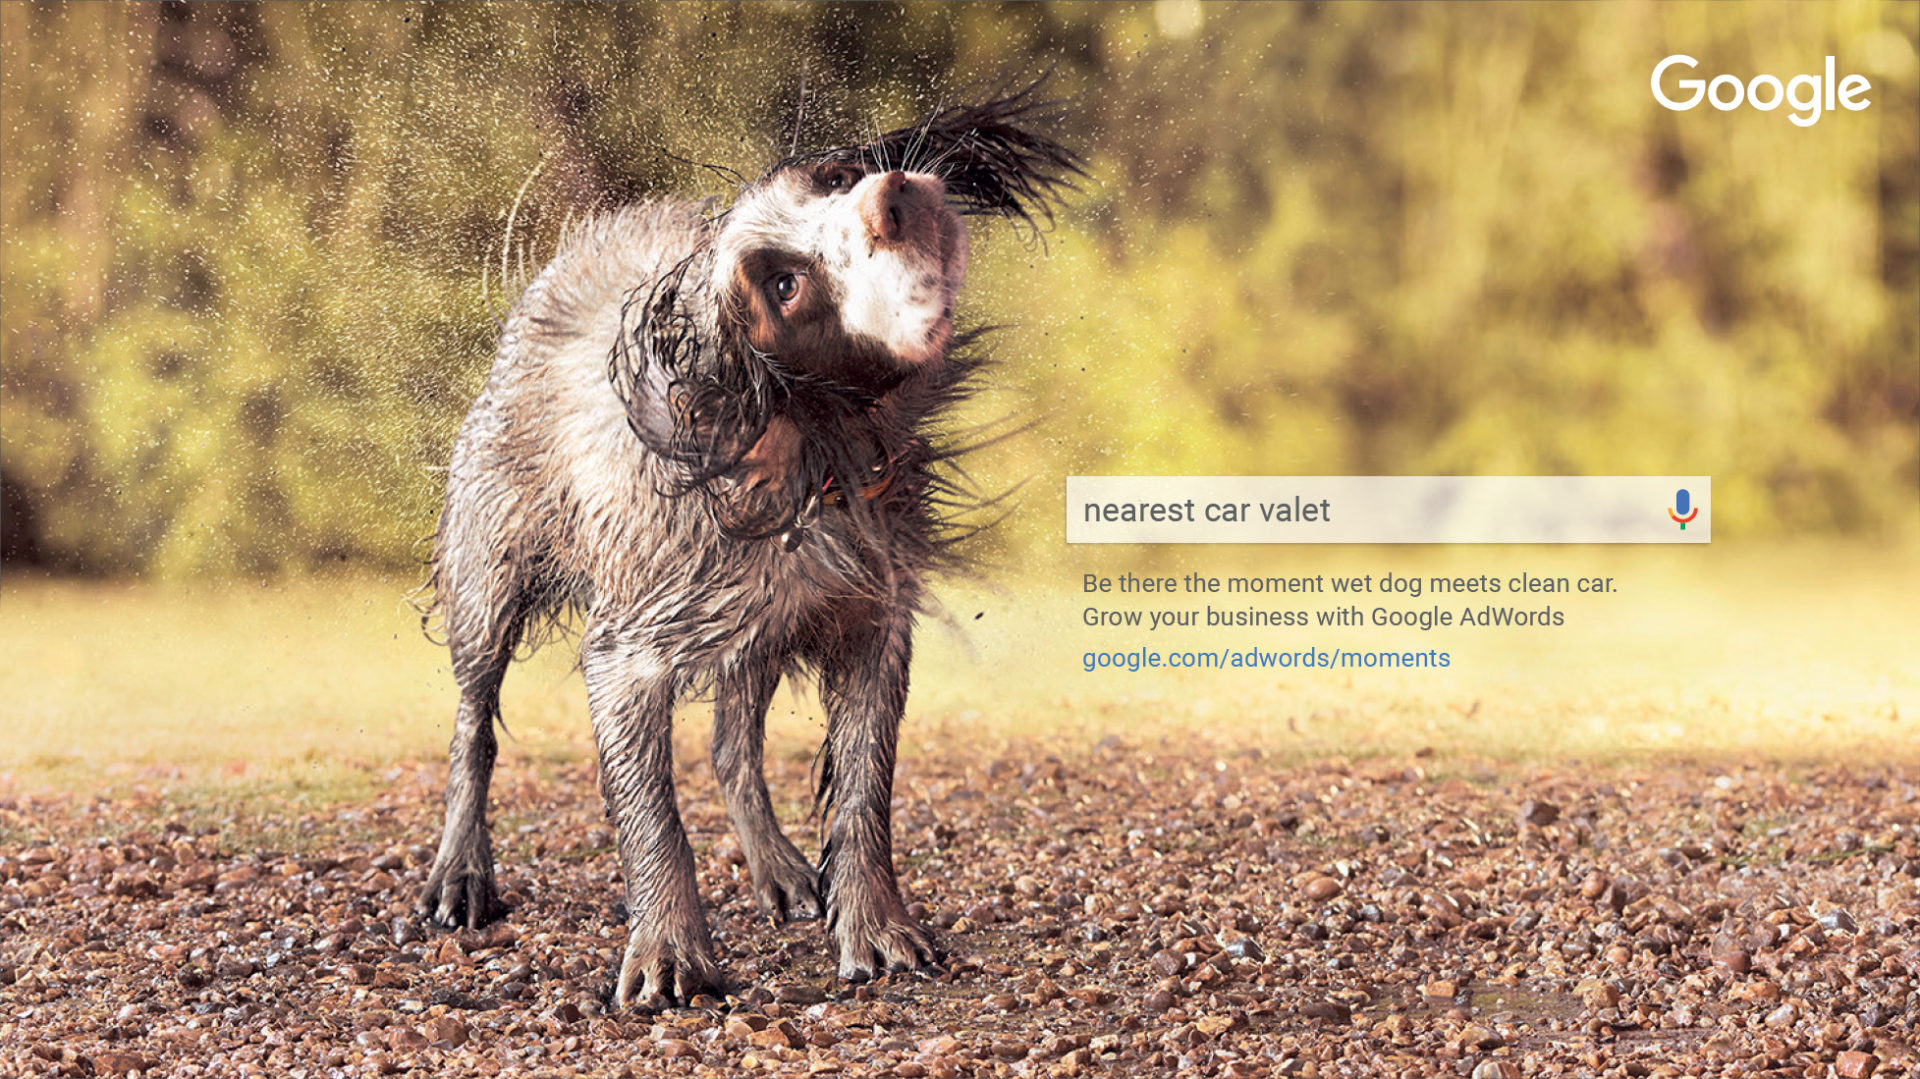 Adam & Eve DDB – Google dog shaking poodle parlour – Shaw and Shaw Advertising photographers photographer photography